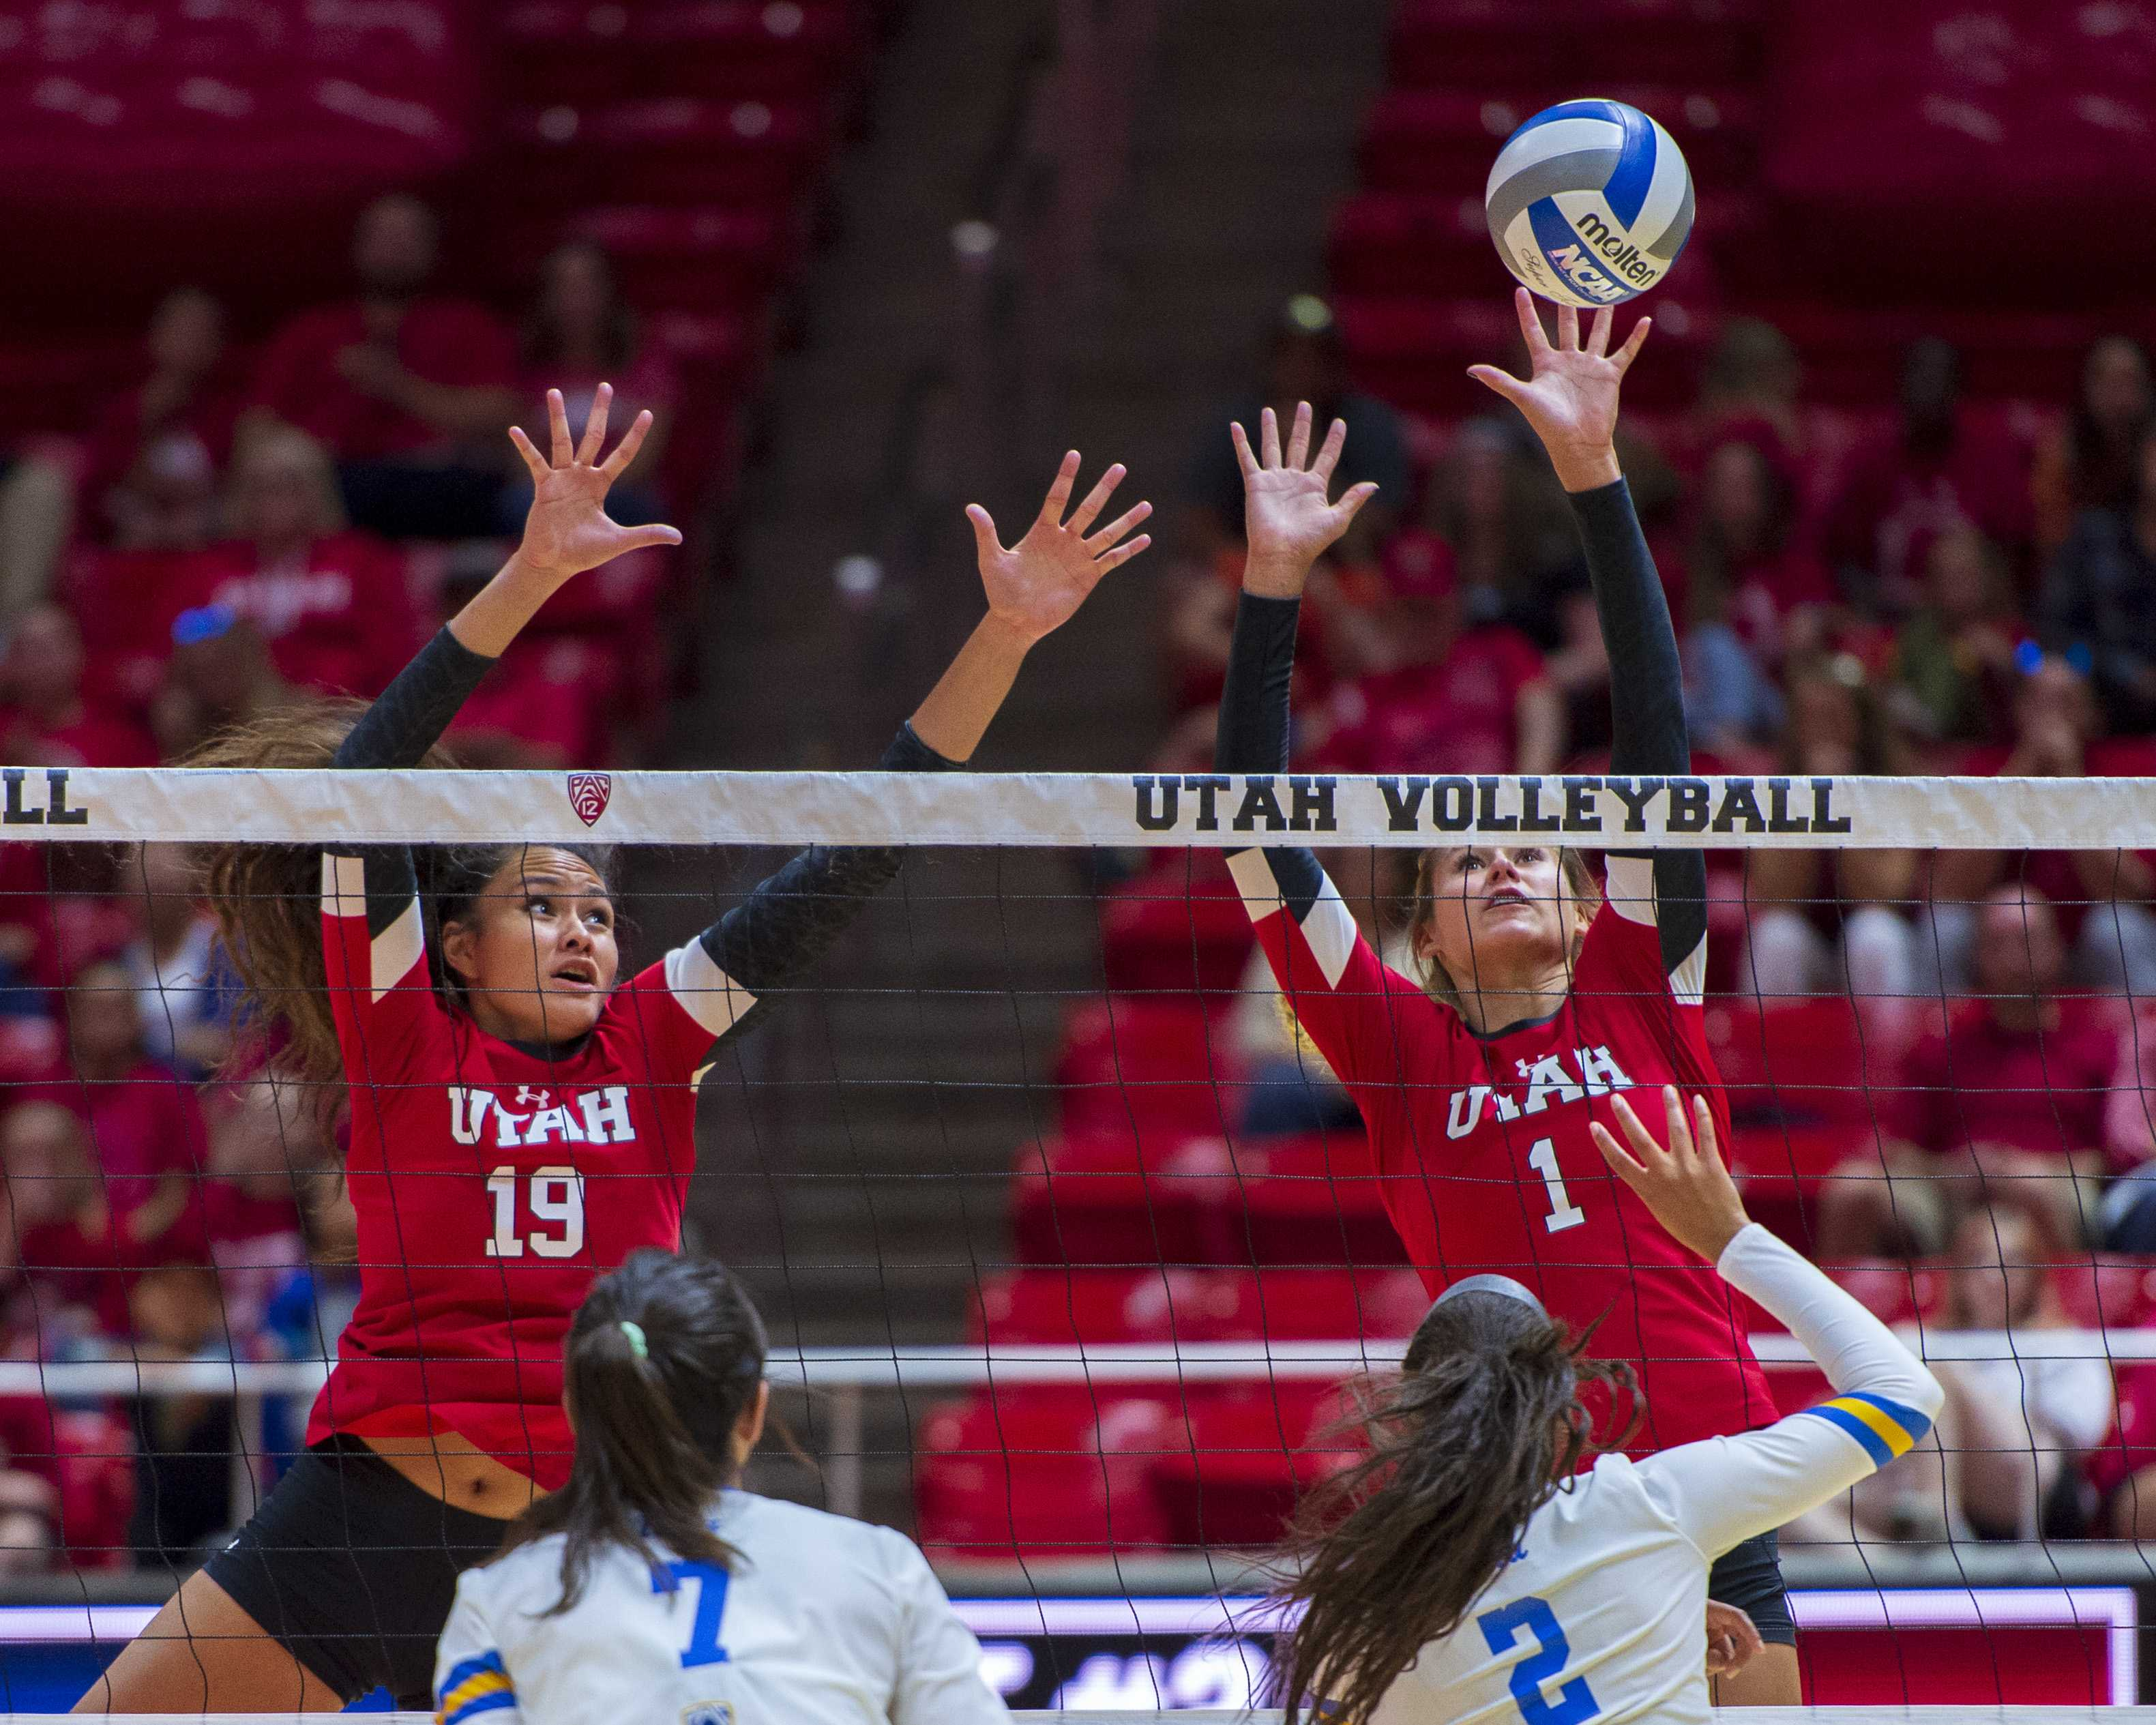 University of Utah sophomore outside hitter Dani Drews (1) blocks the shot along with Phoebe Grace (19) in an NCAA Volleyball match vs. the UCLA Bruins at the Jon M. Huntsman Center in Salt Lake City, Utah on Friday, Sept. 21, 2018. (Photo by Kiffer Creveling | The Daily Utah Chronicle)